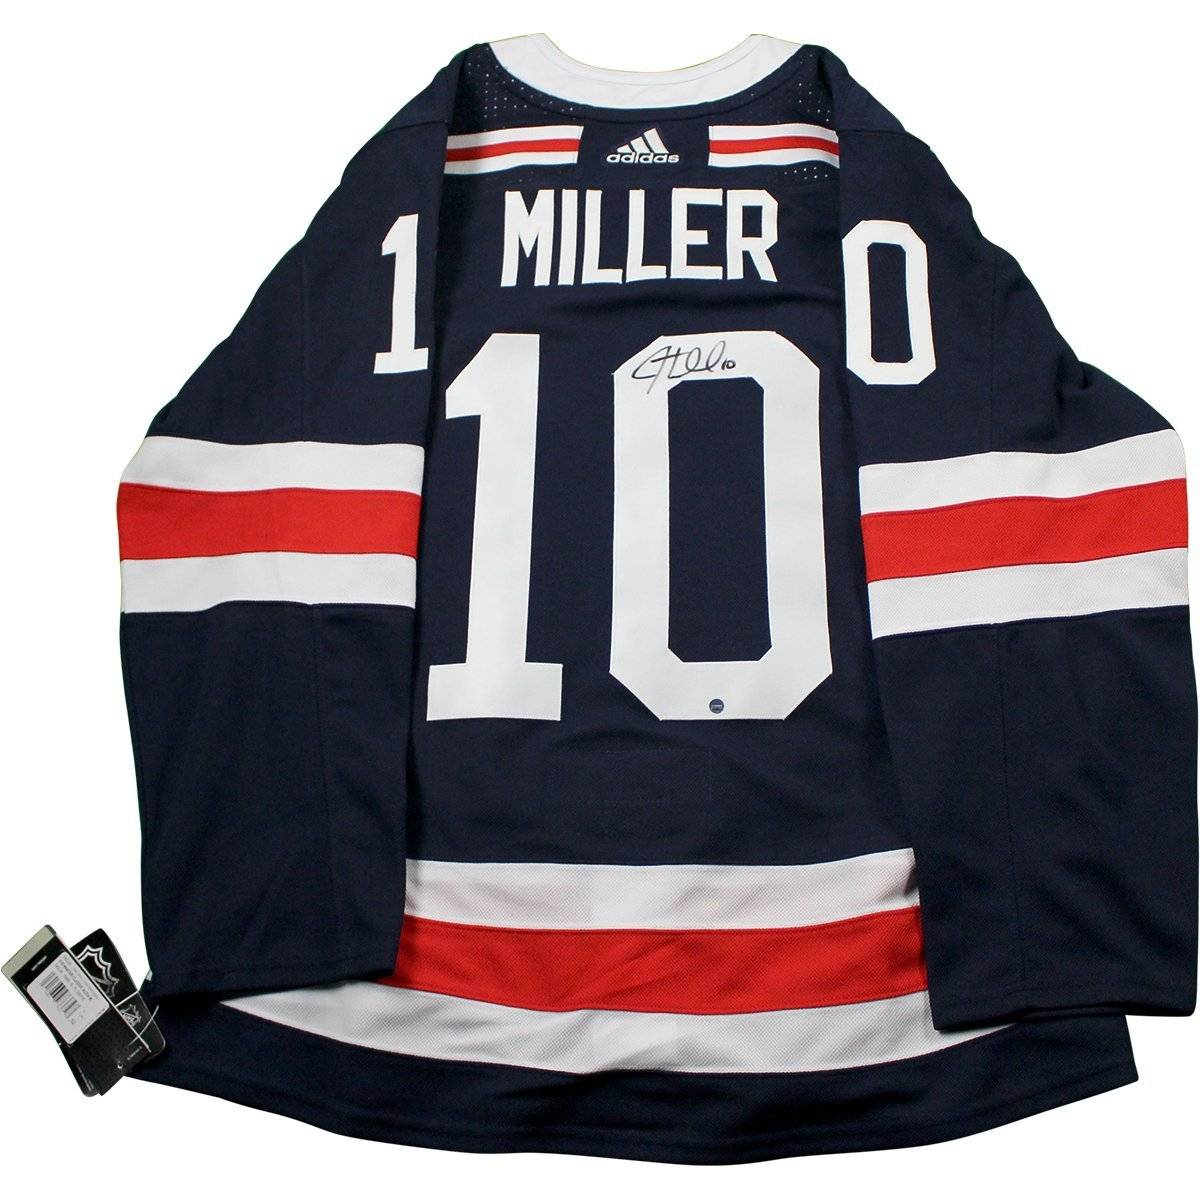 new style a8a63 a3039 JT Miller Signed New York Rangers 2018 NHL Winter Classic Jersey